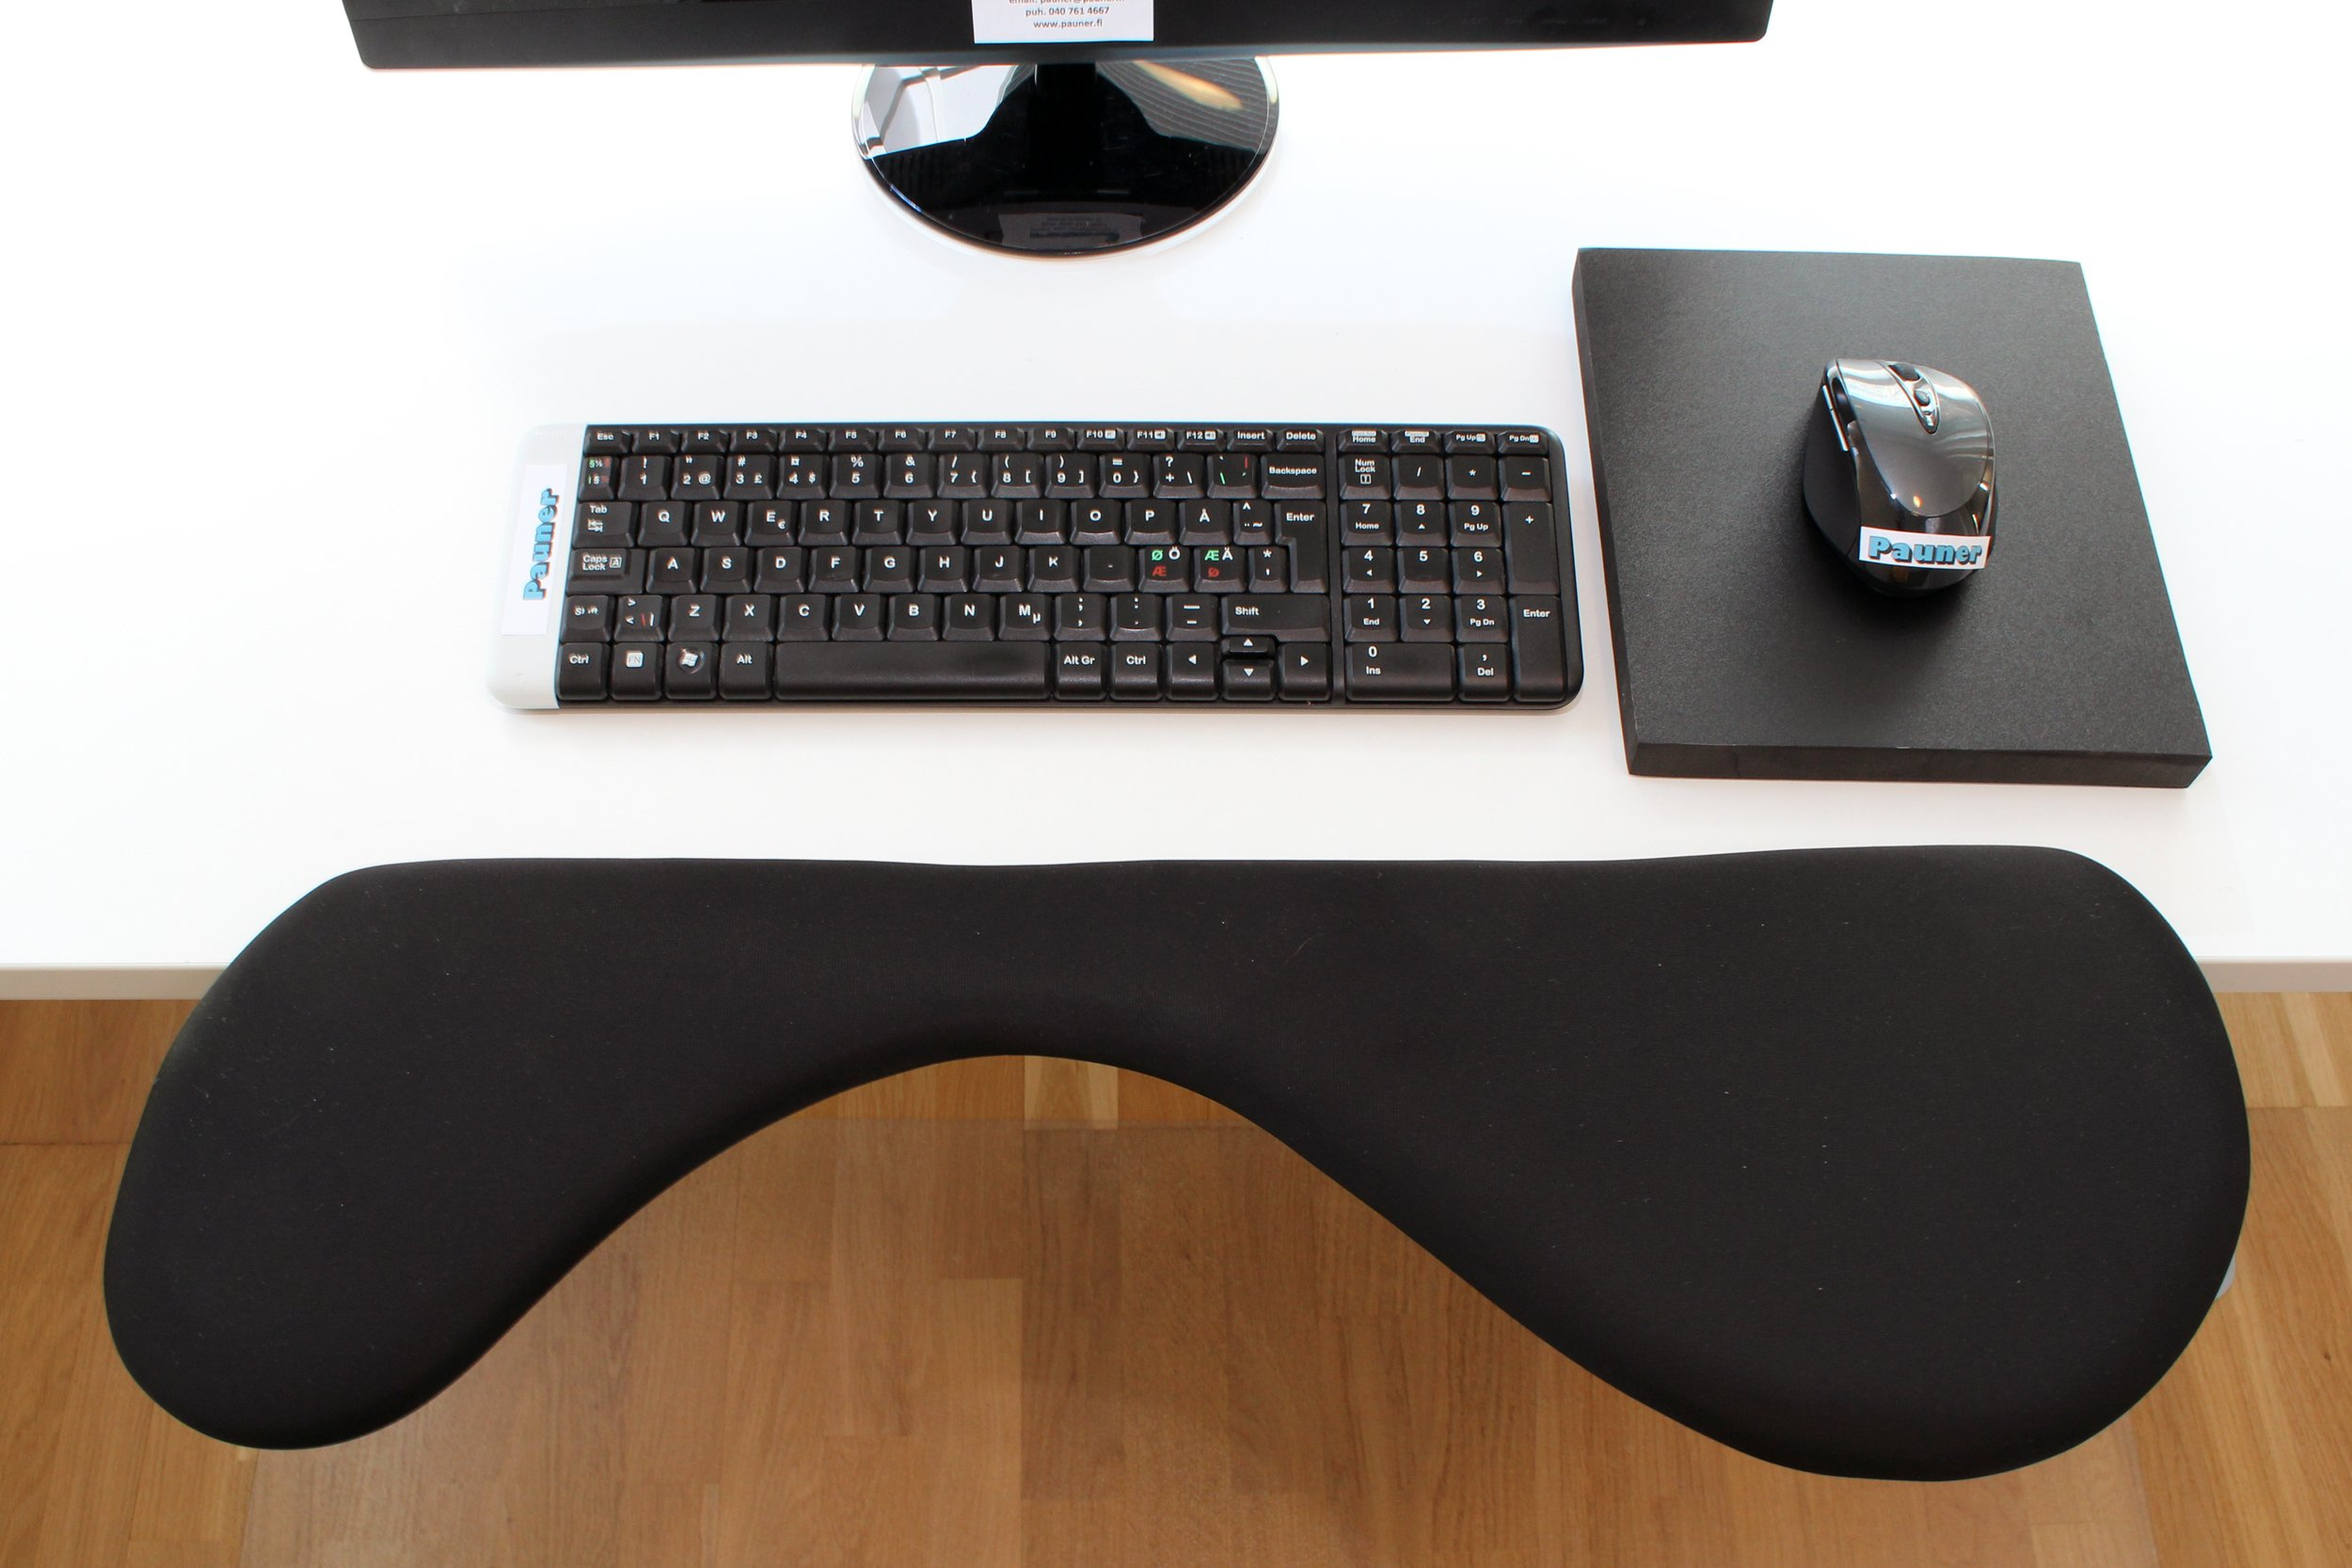 Forearm support Pauner - better than normal keyboard wrist rest - works well with ergonomic mouse by Pauner